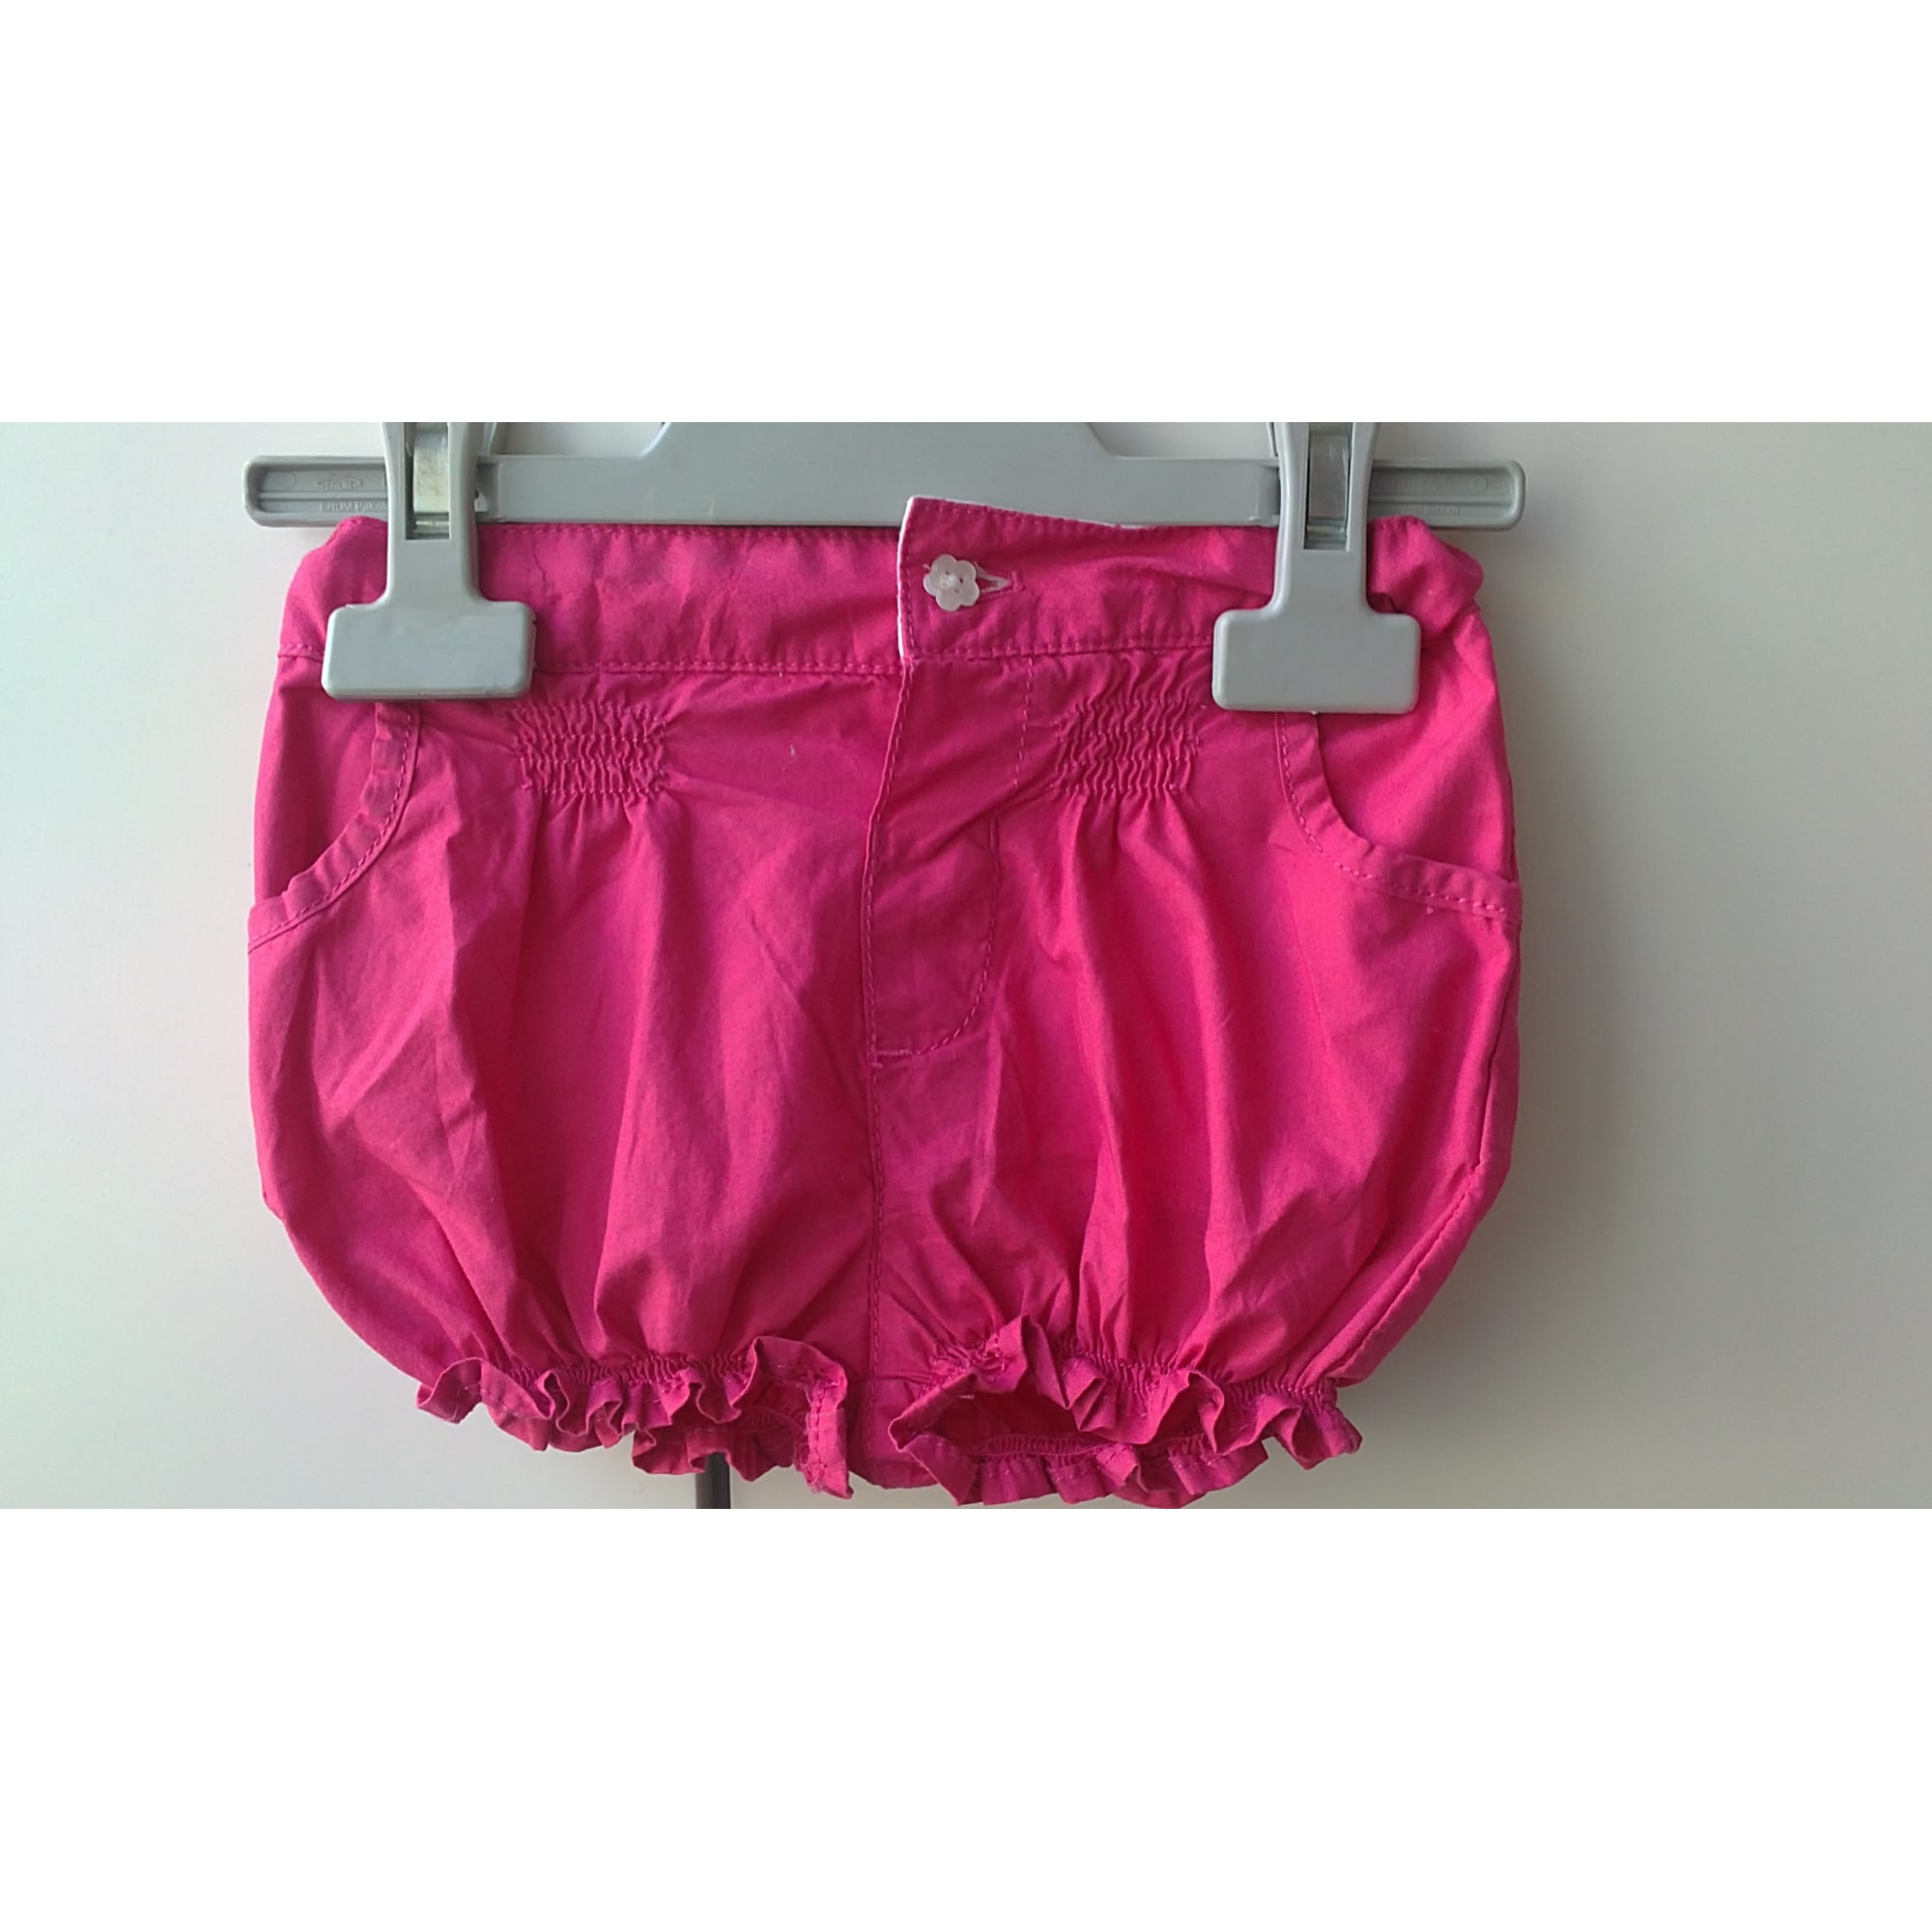 Shorts BOUT'CHOU Pink, fuchsia, light pink